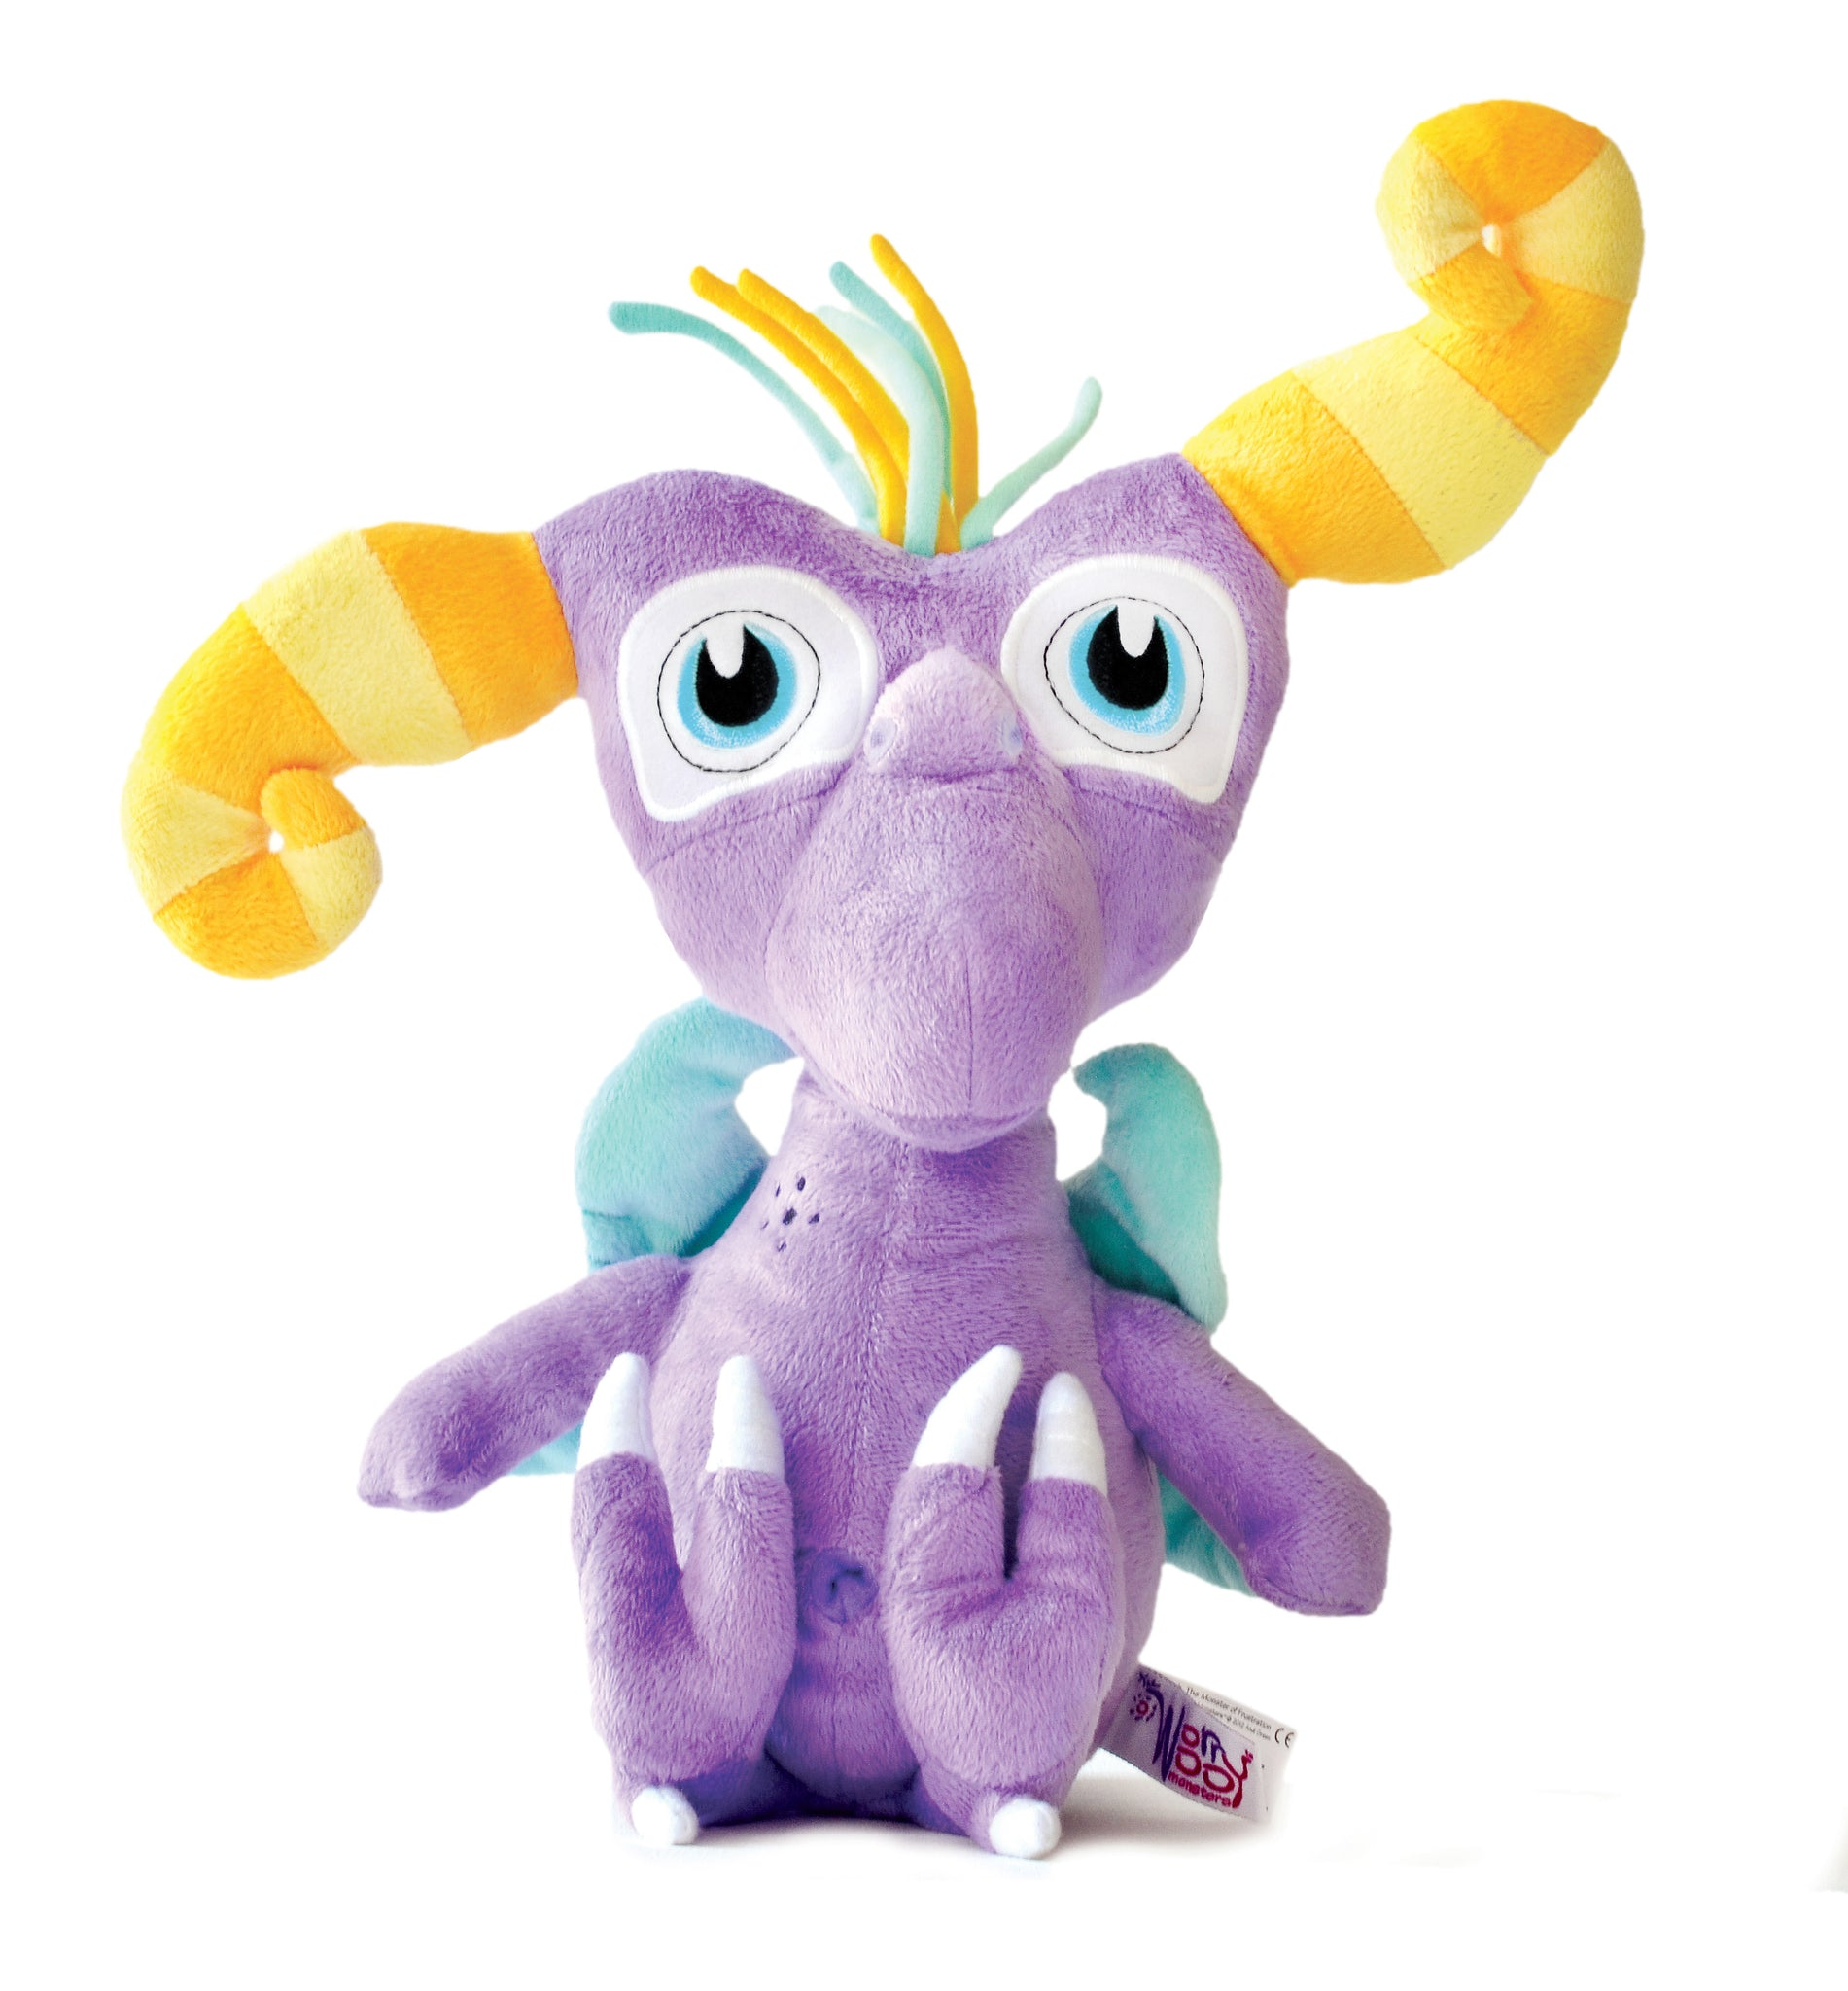 Twitch - The Monster of Frustration - WorryWoo Plush Toy